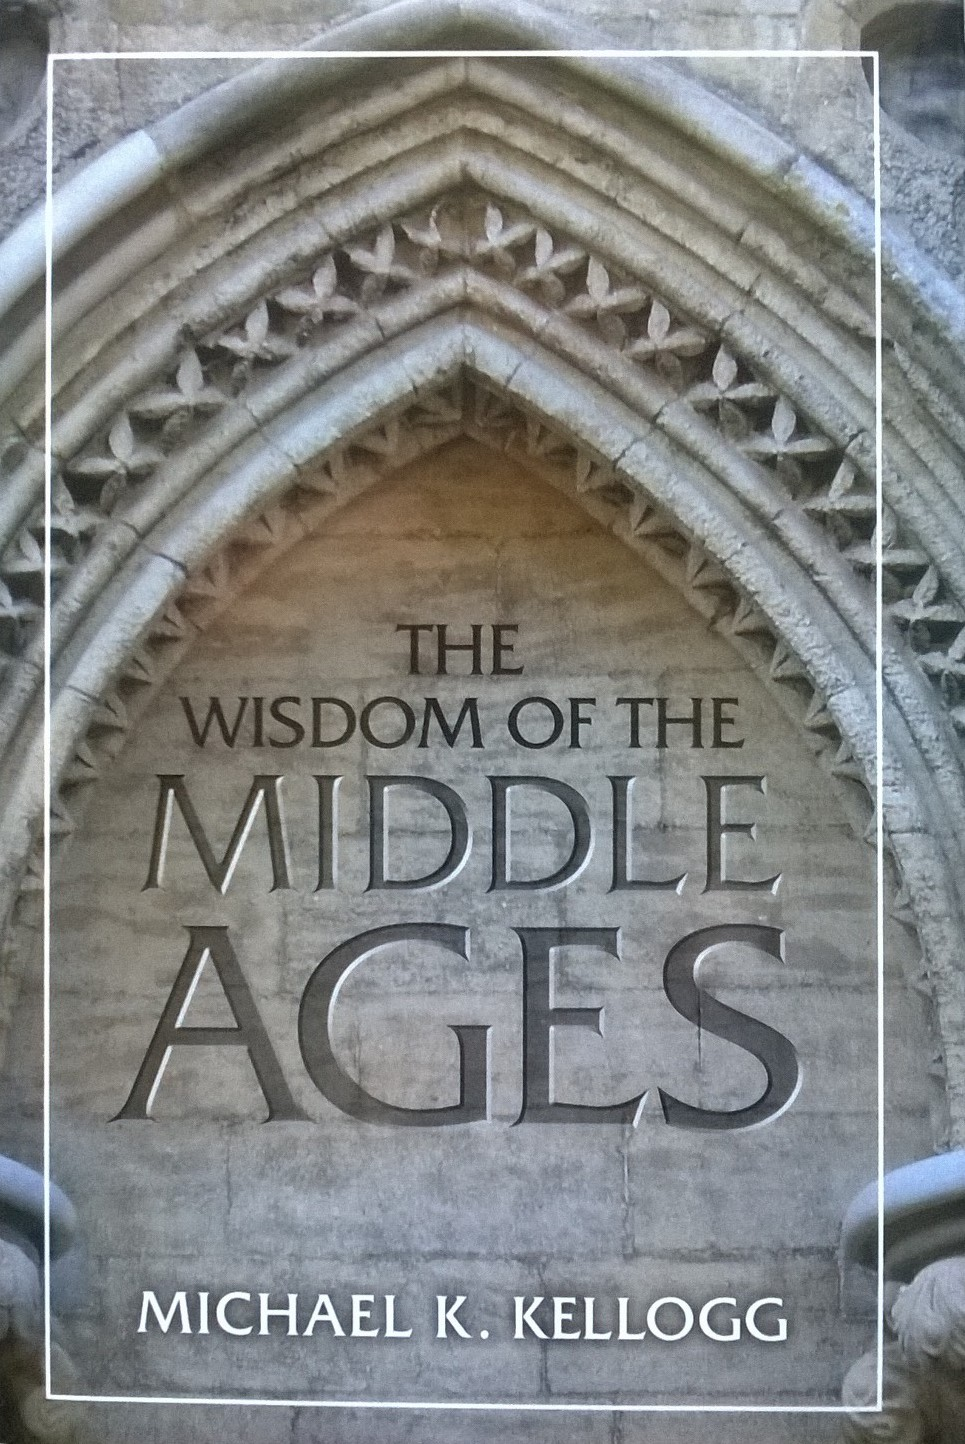 Kellogg, Michael K. The Wisdom of the Middle Ages